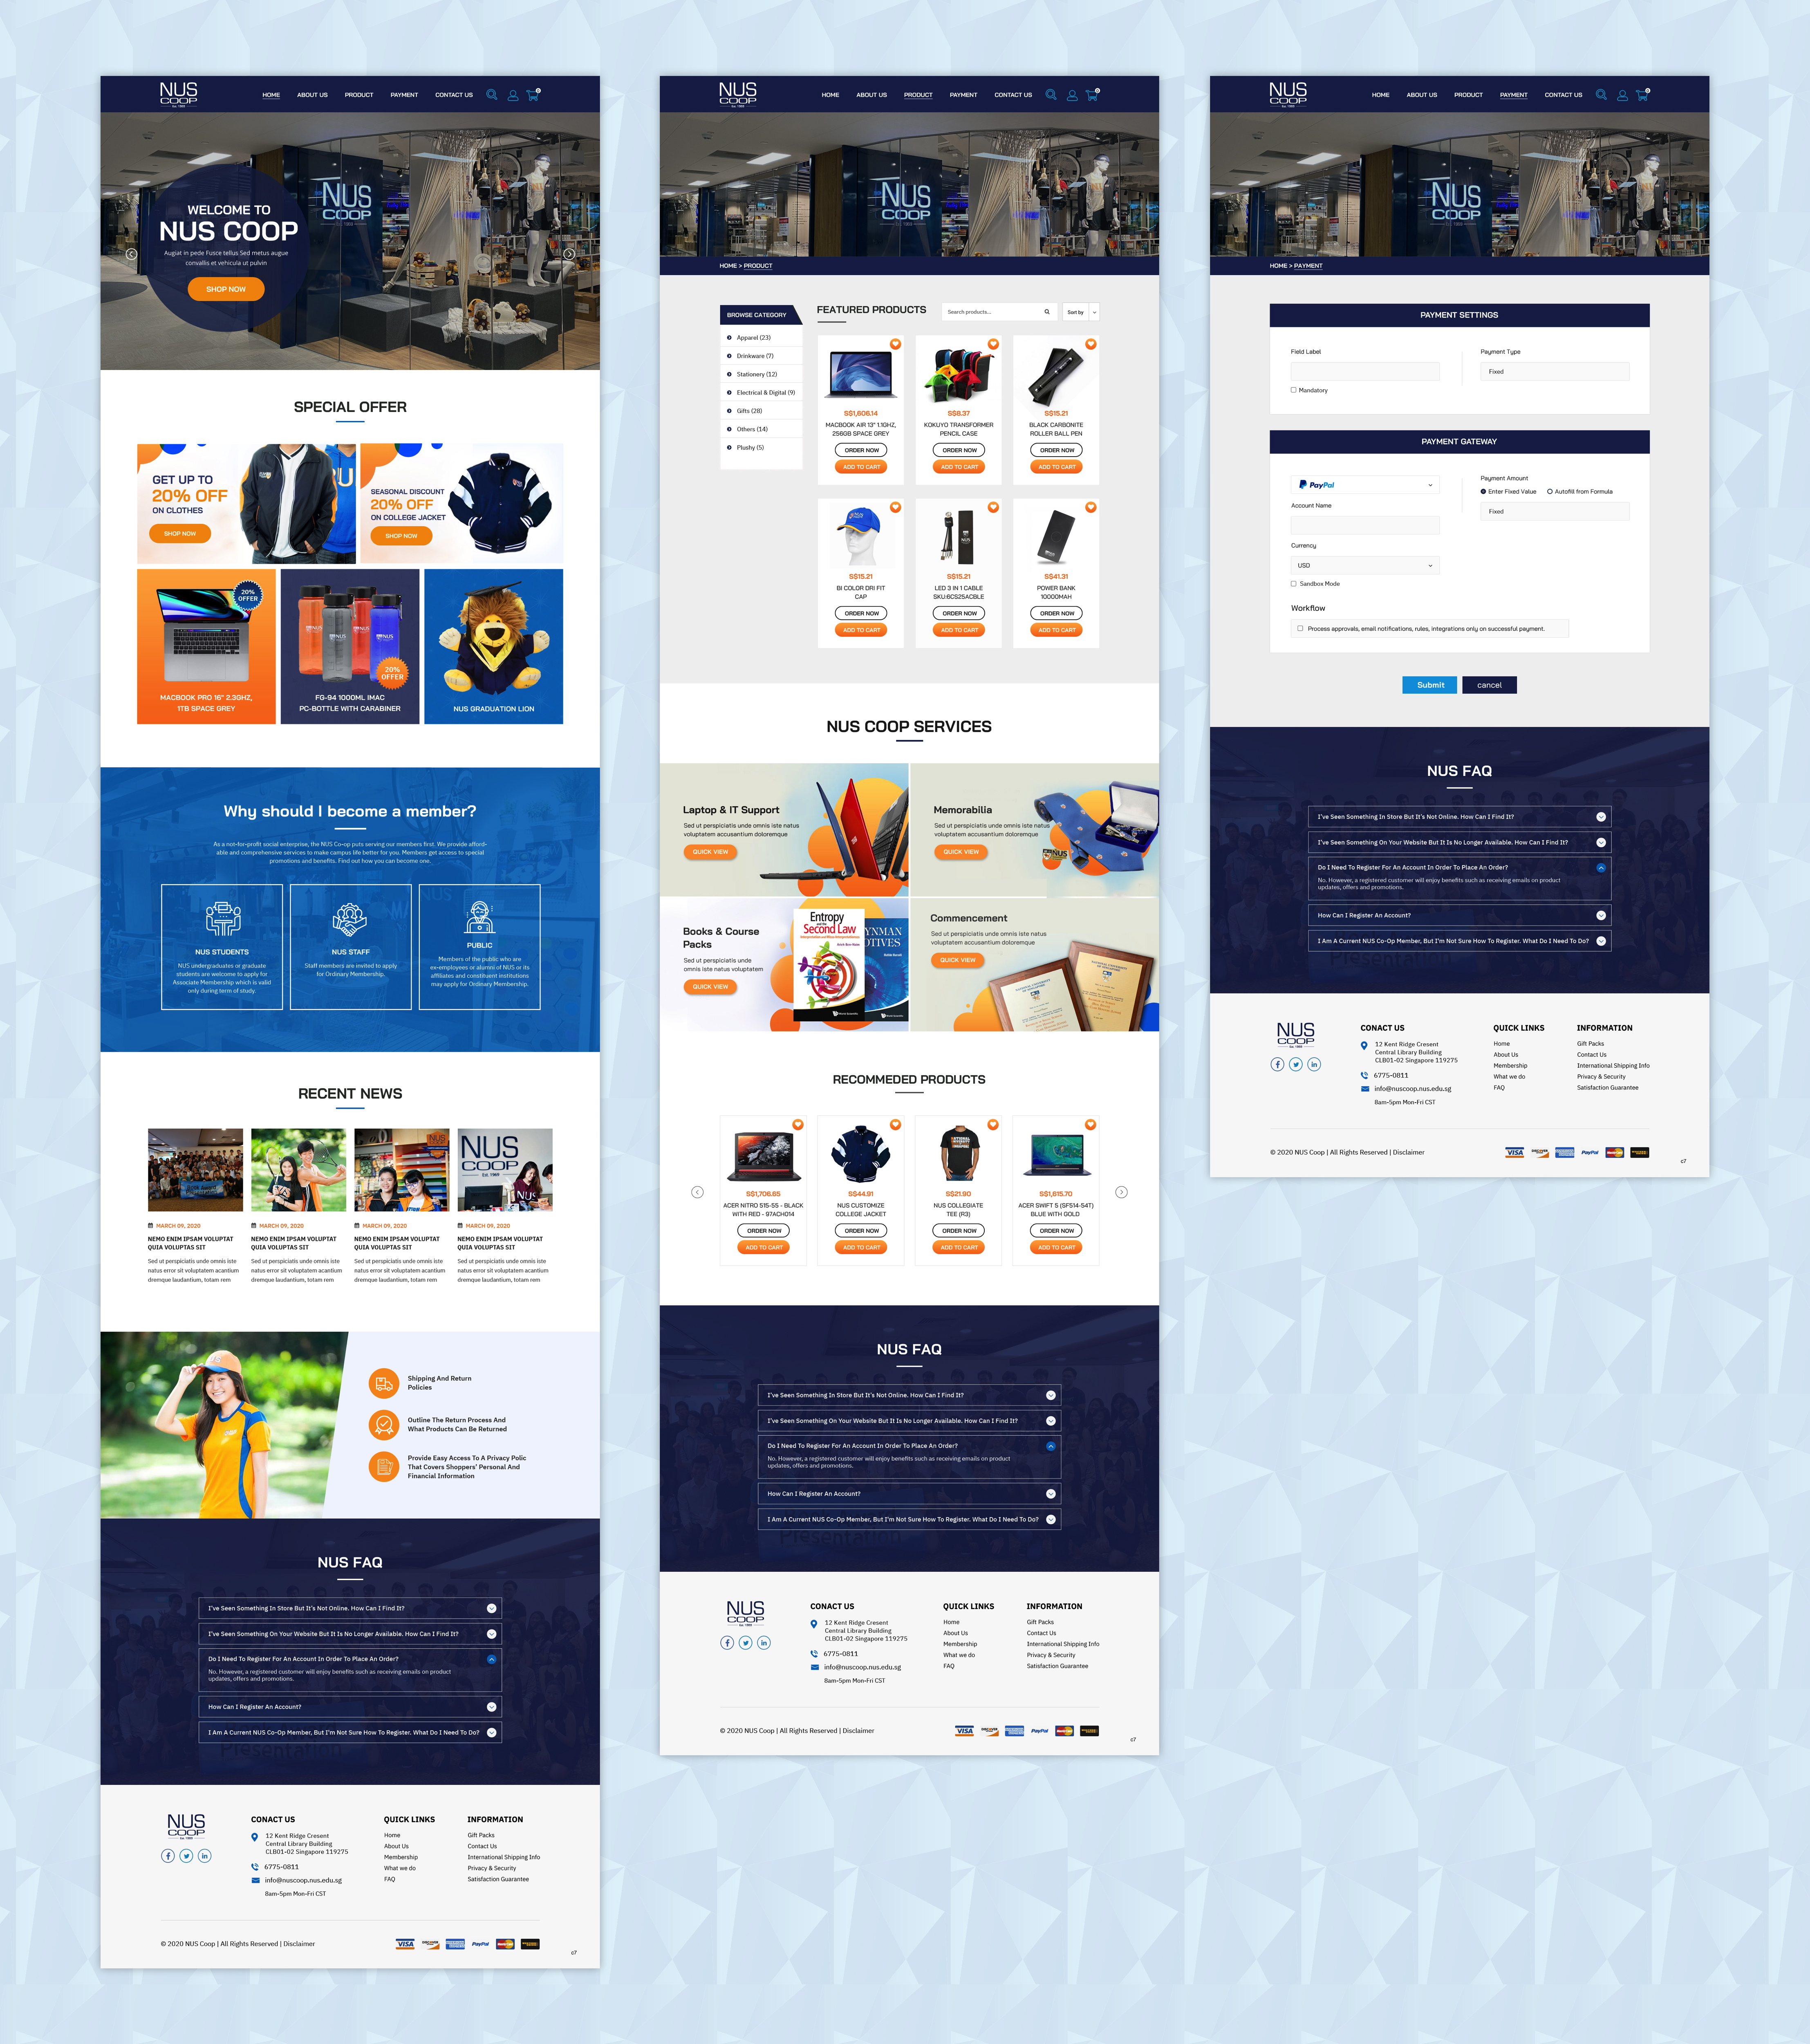 Professional Modern Web Design For A Company By Pb Design 24549574